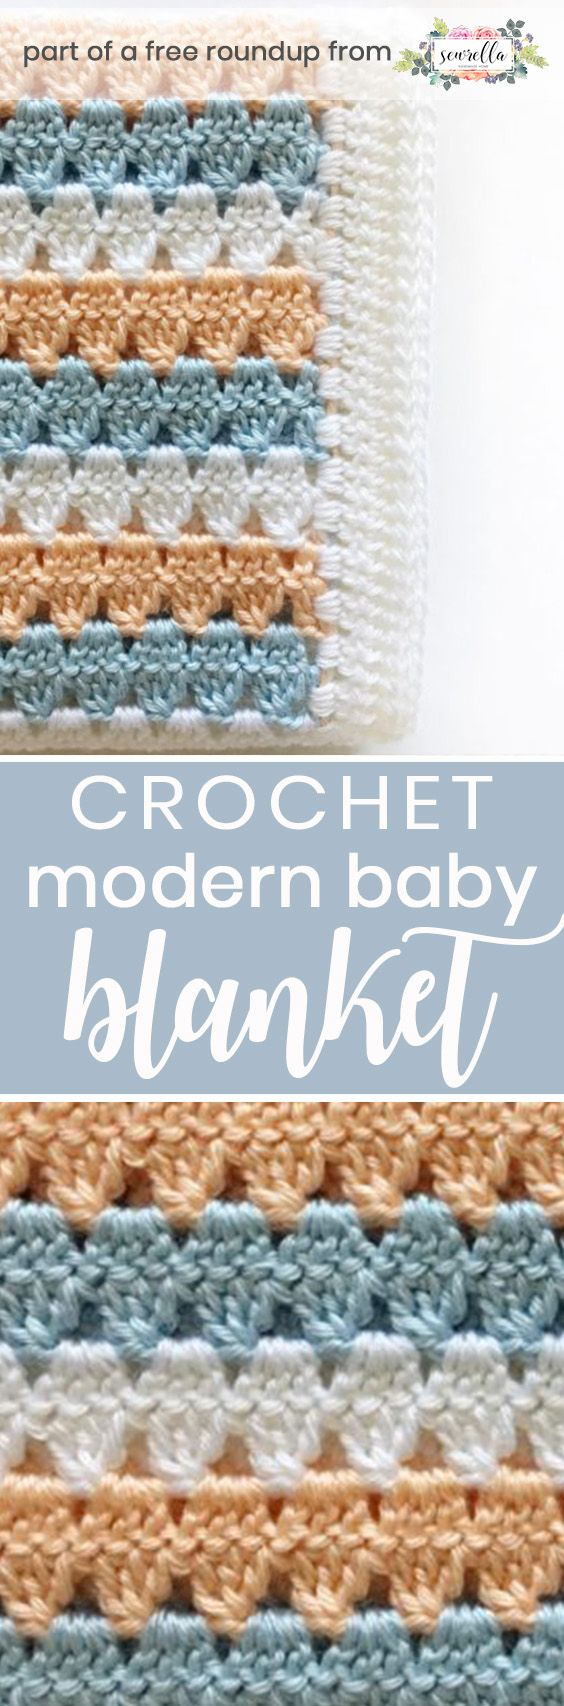 Get the free crochet pattern for this modern granny stripe baby blanket from Daisy Farm Crafts featured in my gender neutral baby blanket pattern roundup!